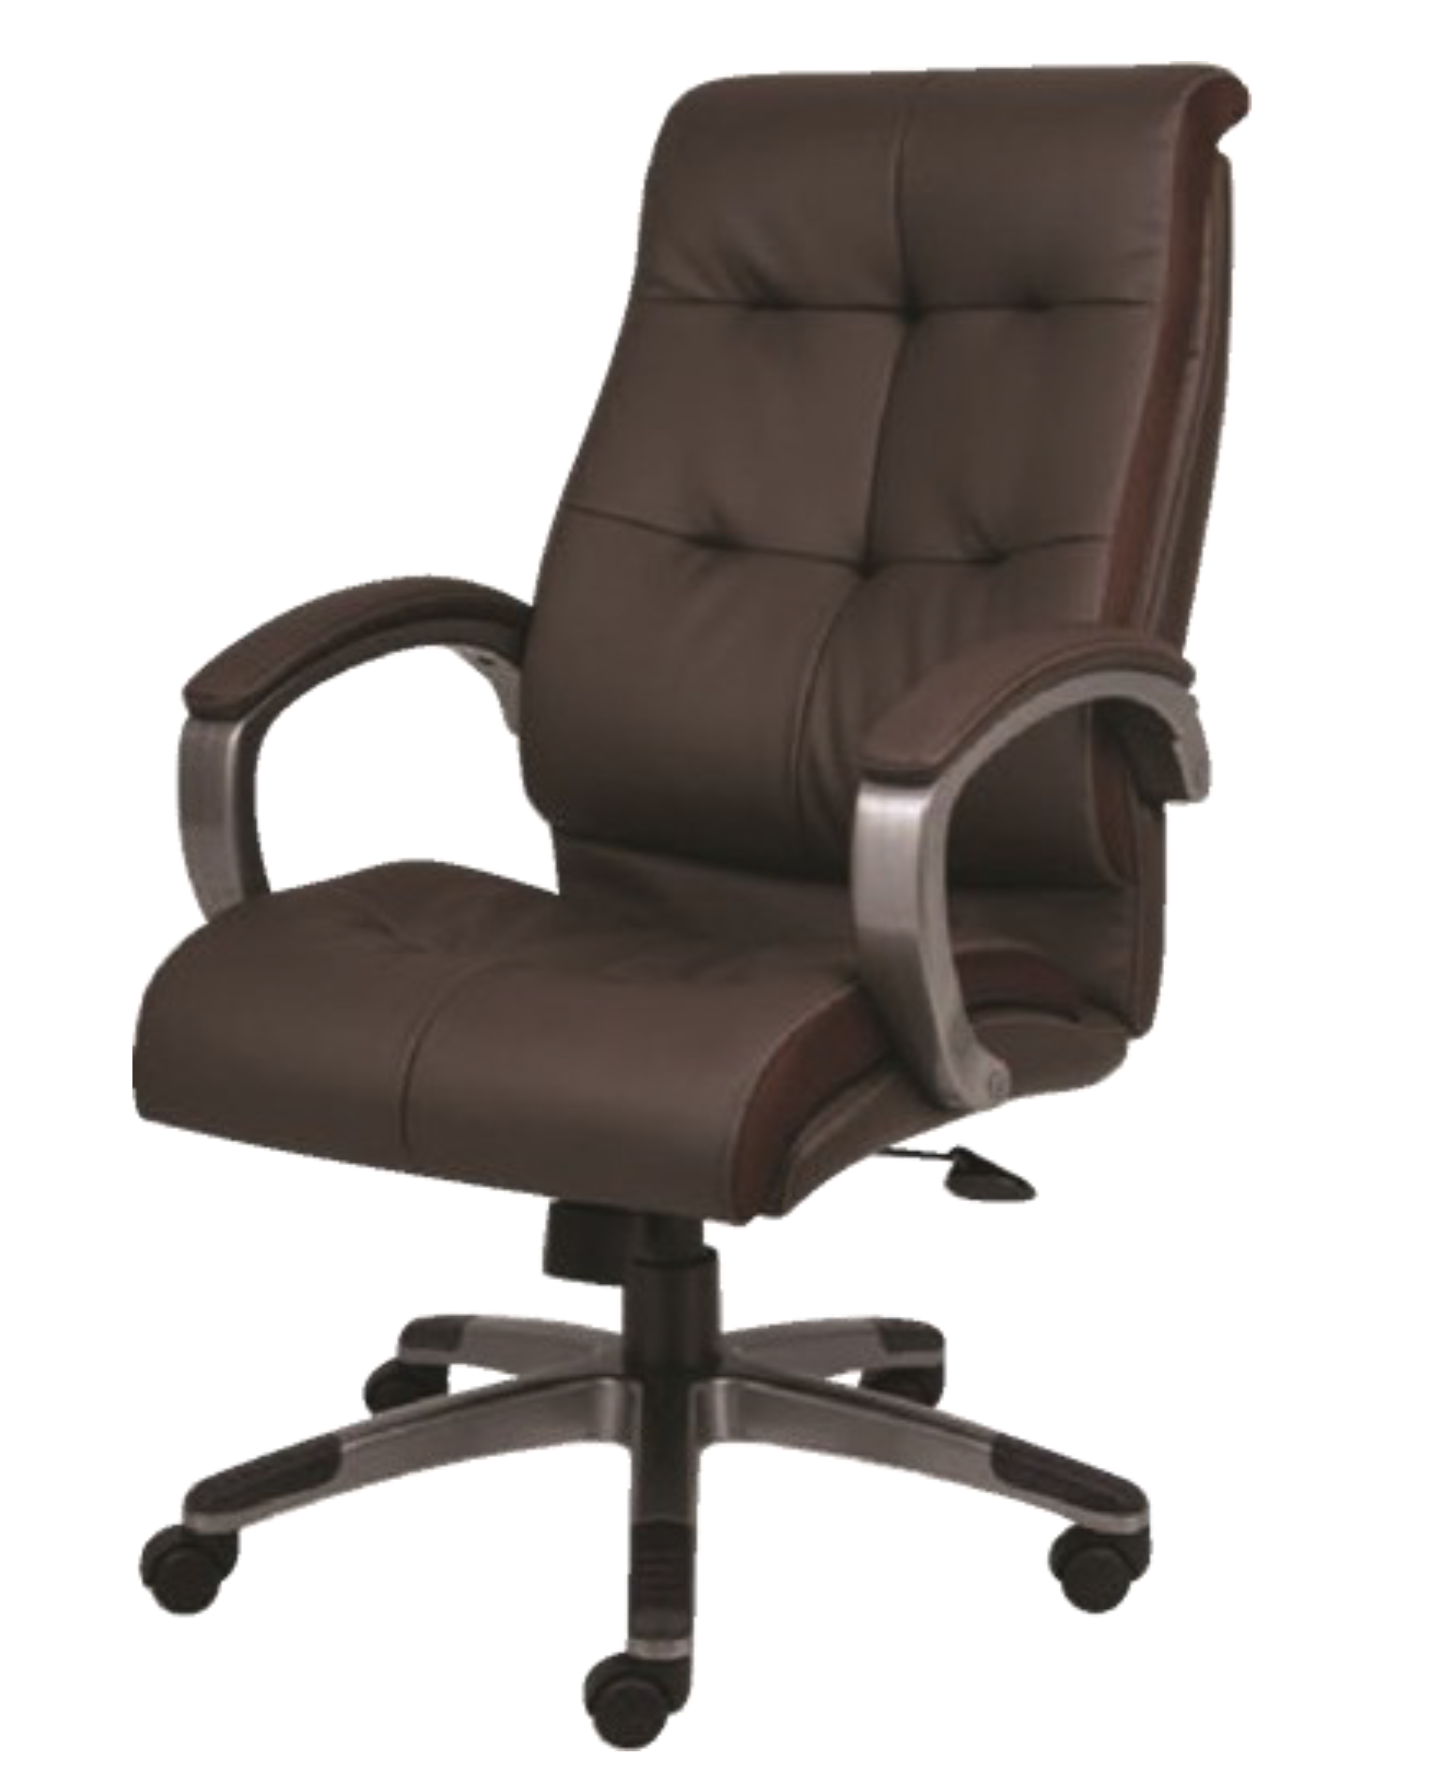 high back brown executive chair with upholstered arm pads chrome frame and base sit for life. Black Bedroom Furniture Sets. Home Design Ideas